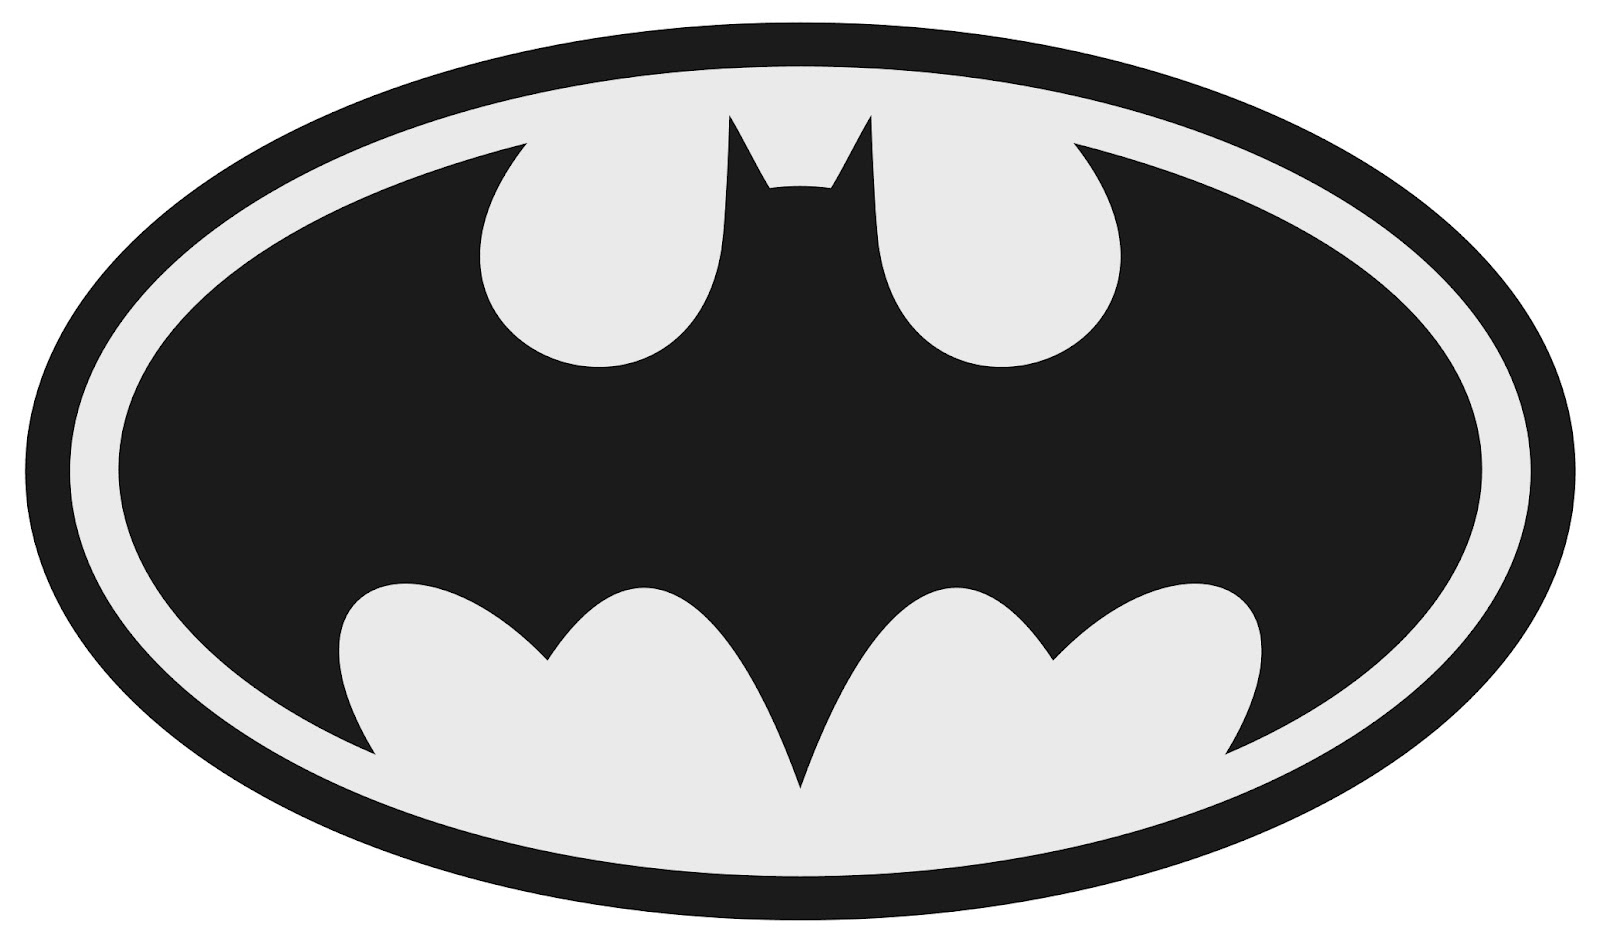 1600x946 Superhero Black And White Superhero Logos Black And White Clipart